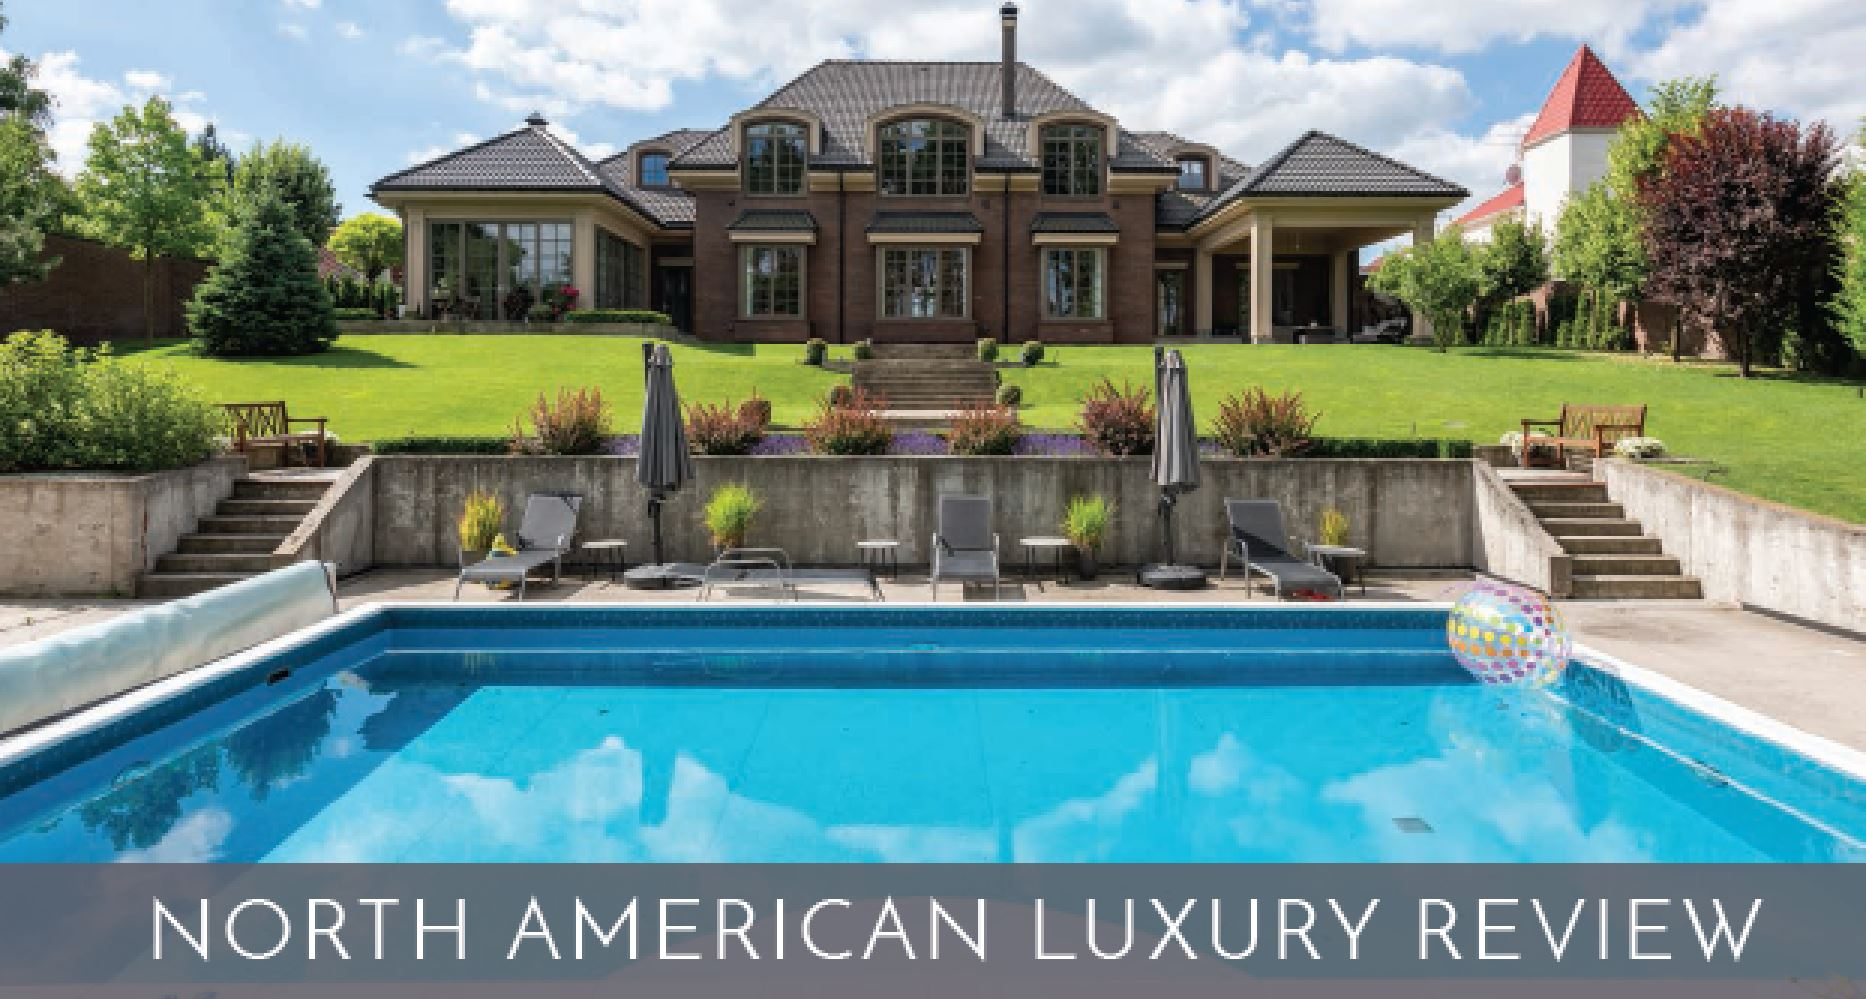 Luxury home market Report for North American Luxury Review June 2021 ILHM Hoey Team 239RealEstateDeals.Com LLC